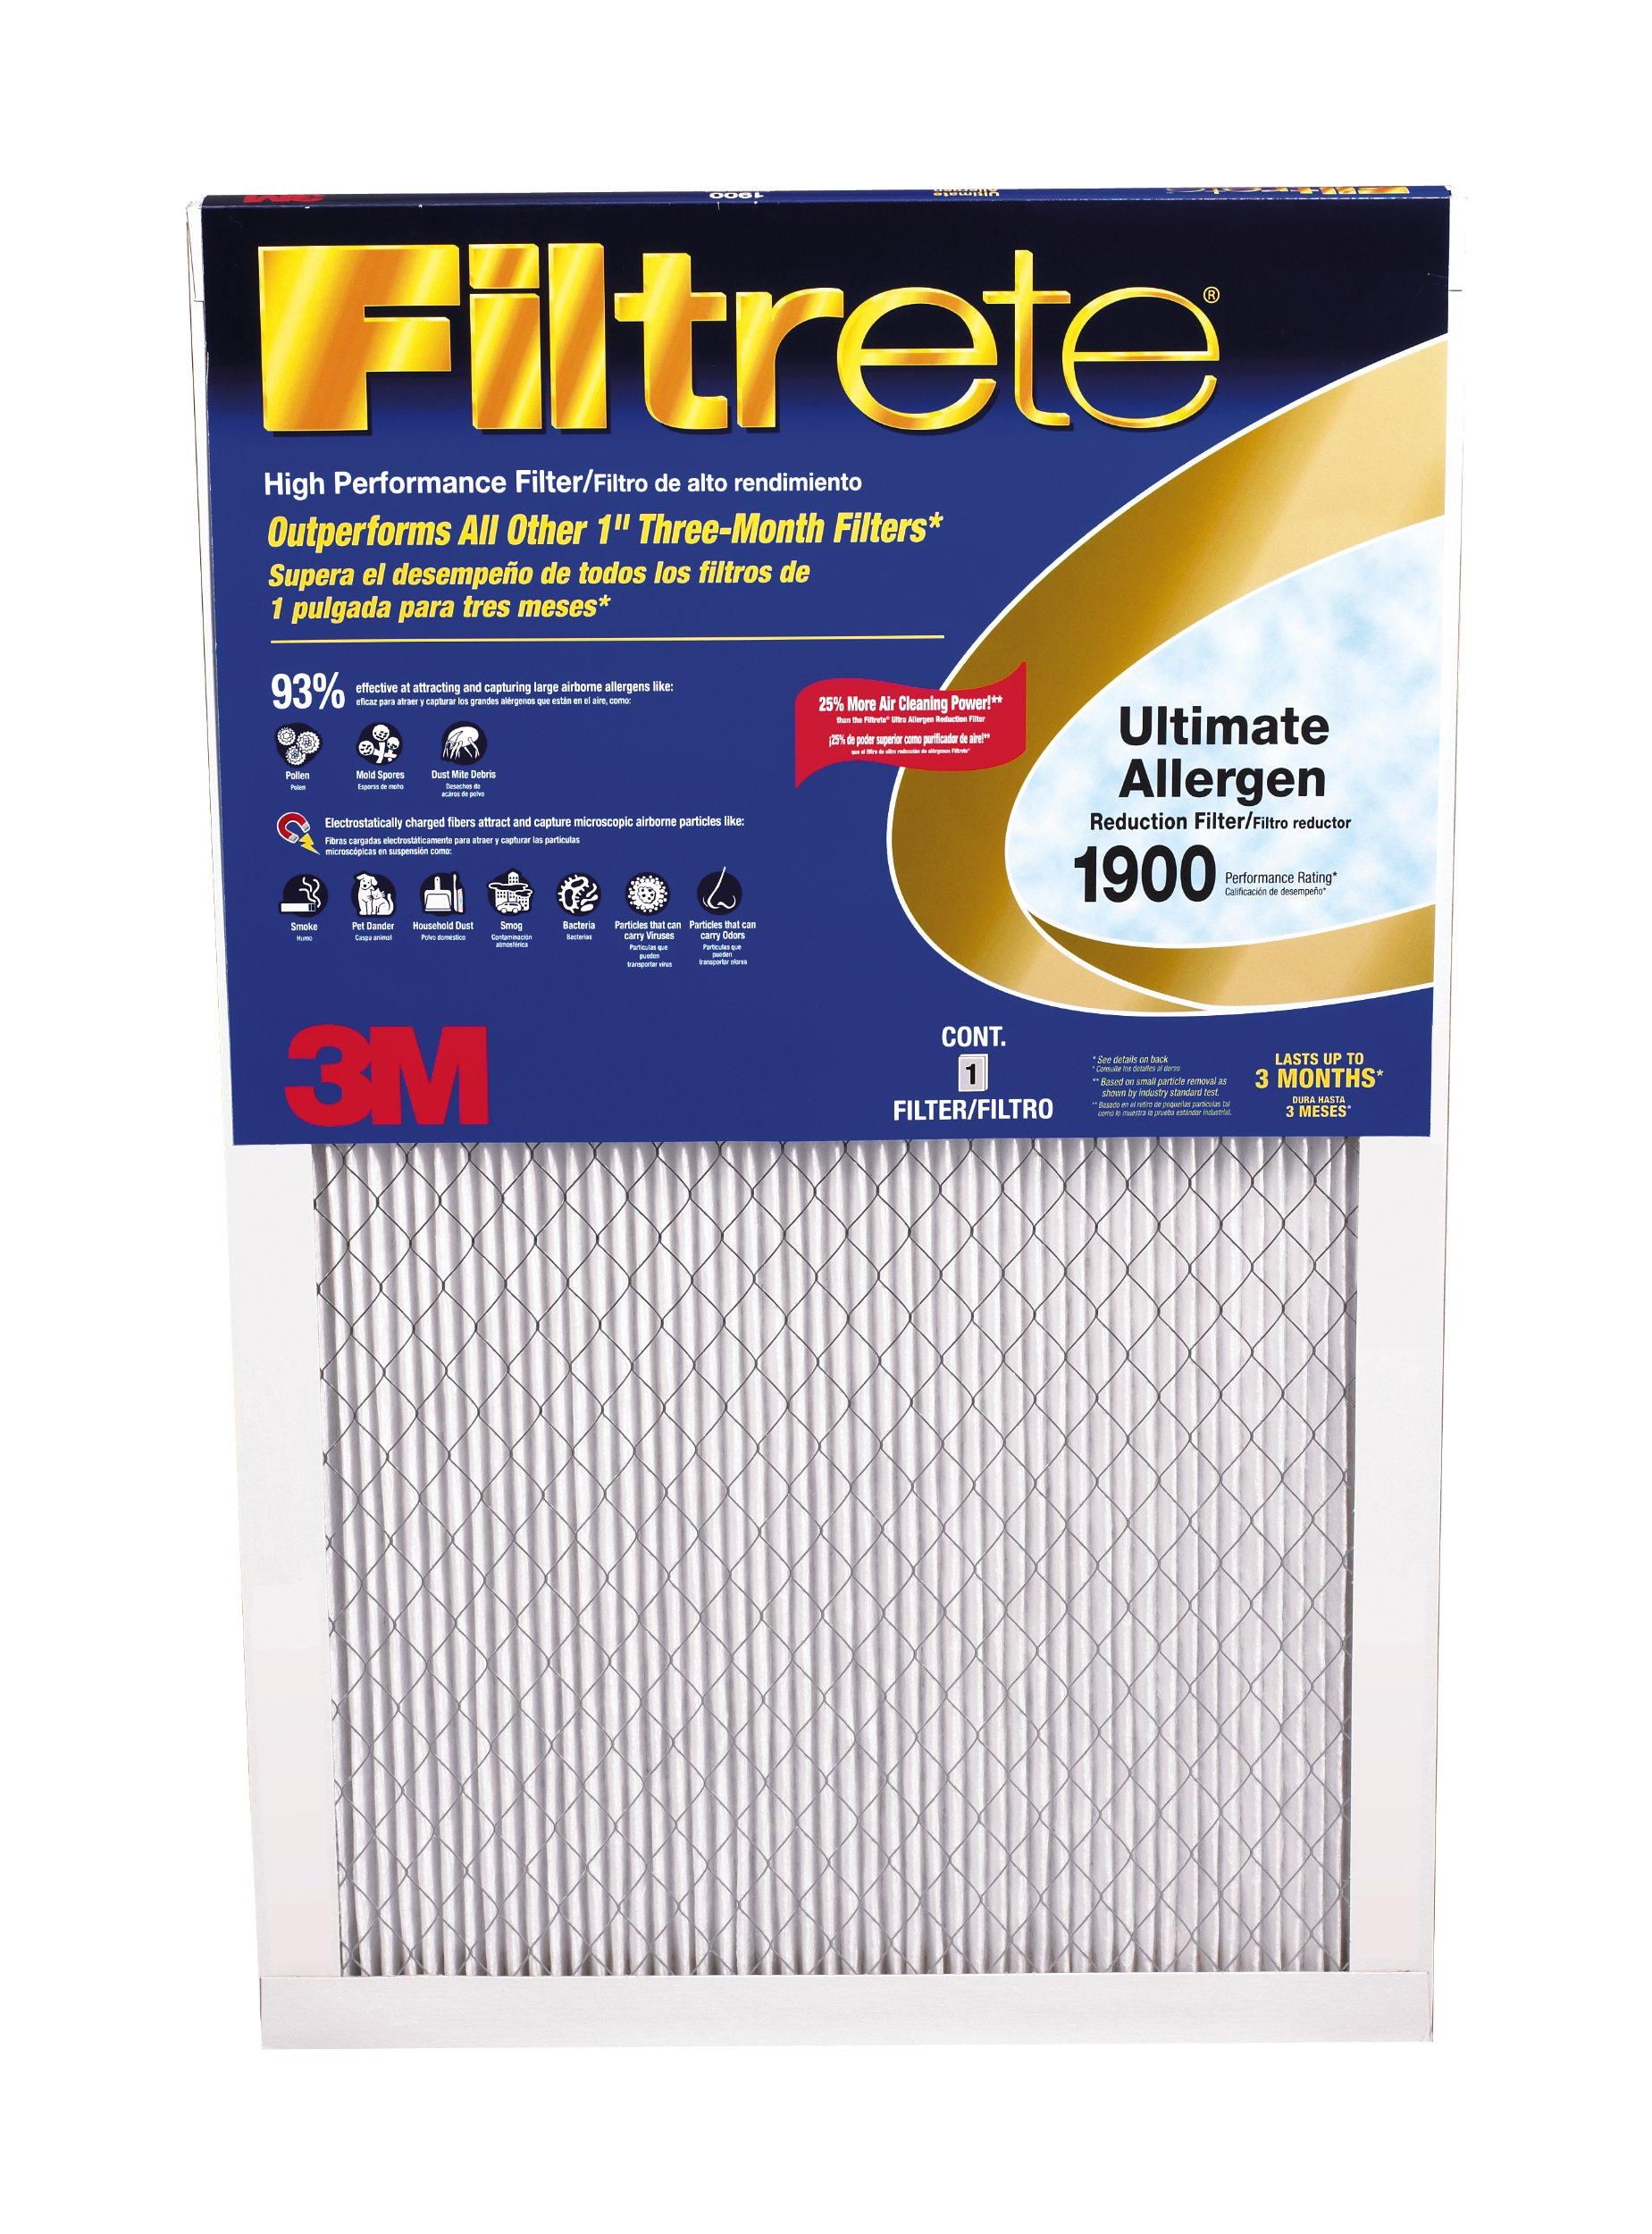 Filtrete MPR 1900 24 x 24 x 1 Healthy Living Ultimate Allergen Reduction AC Furnace Air Filter, Attracts Fine Inhalable Particles, Guaranteed Airflow up to 90 days, 6-Pack by Filtrete (Image #2)